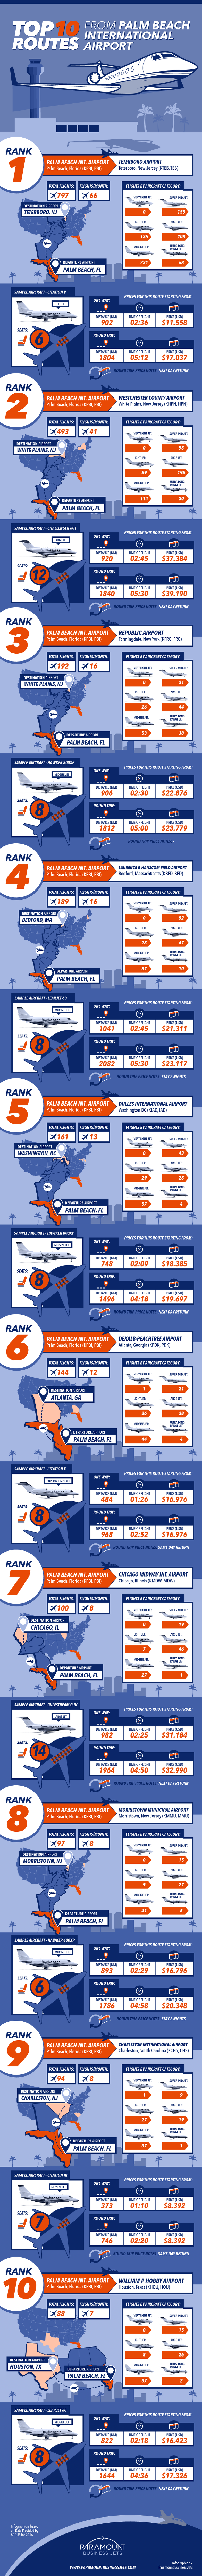 Top 10 Routes - Palm Beach Airport